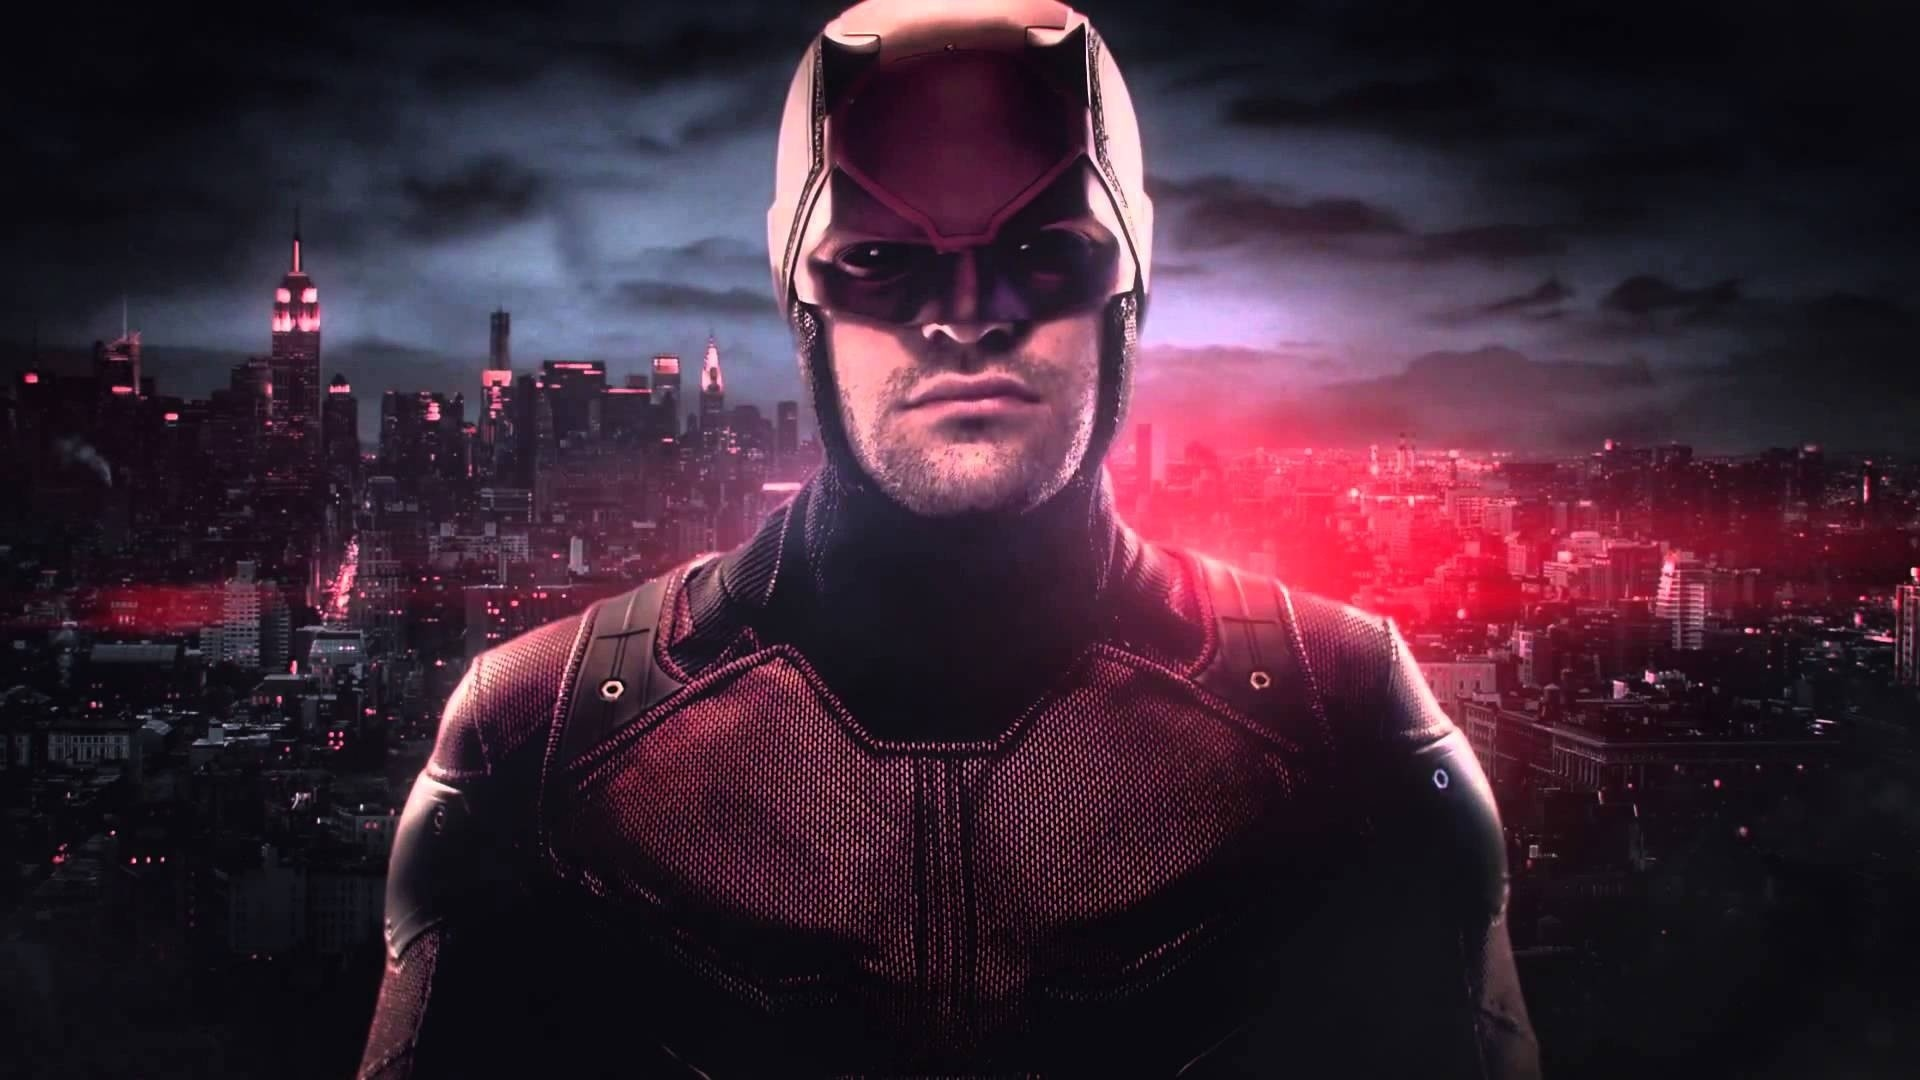 Res: 1920x1080, Daredevil Movie Wallpaper Desktop Background